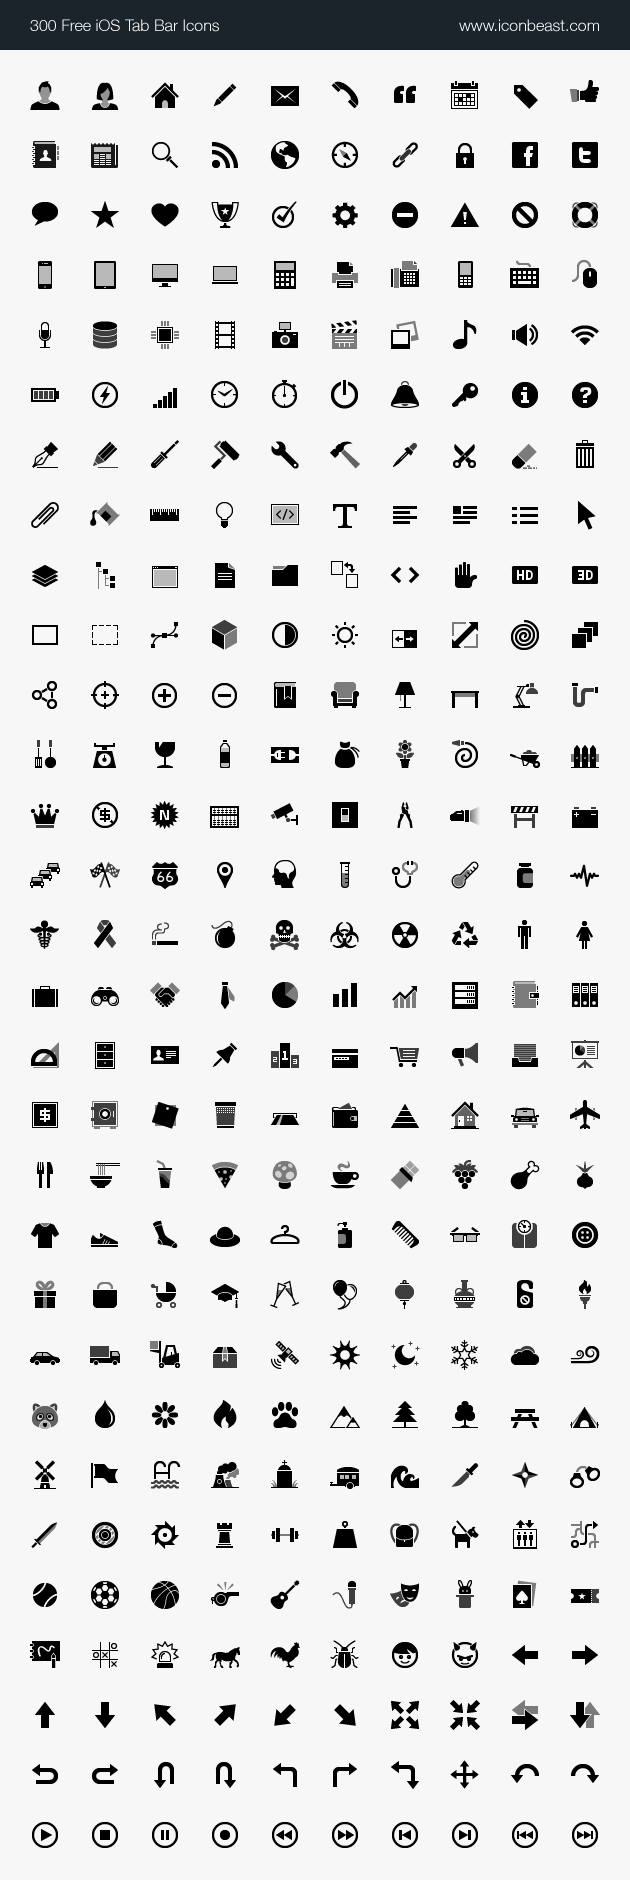 ios-tab-bar-icons-free